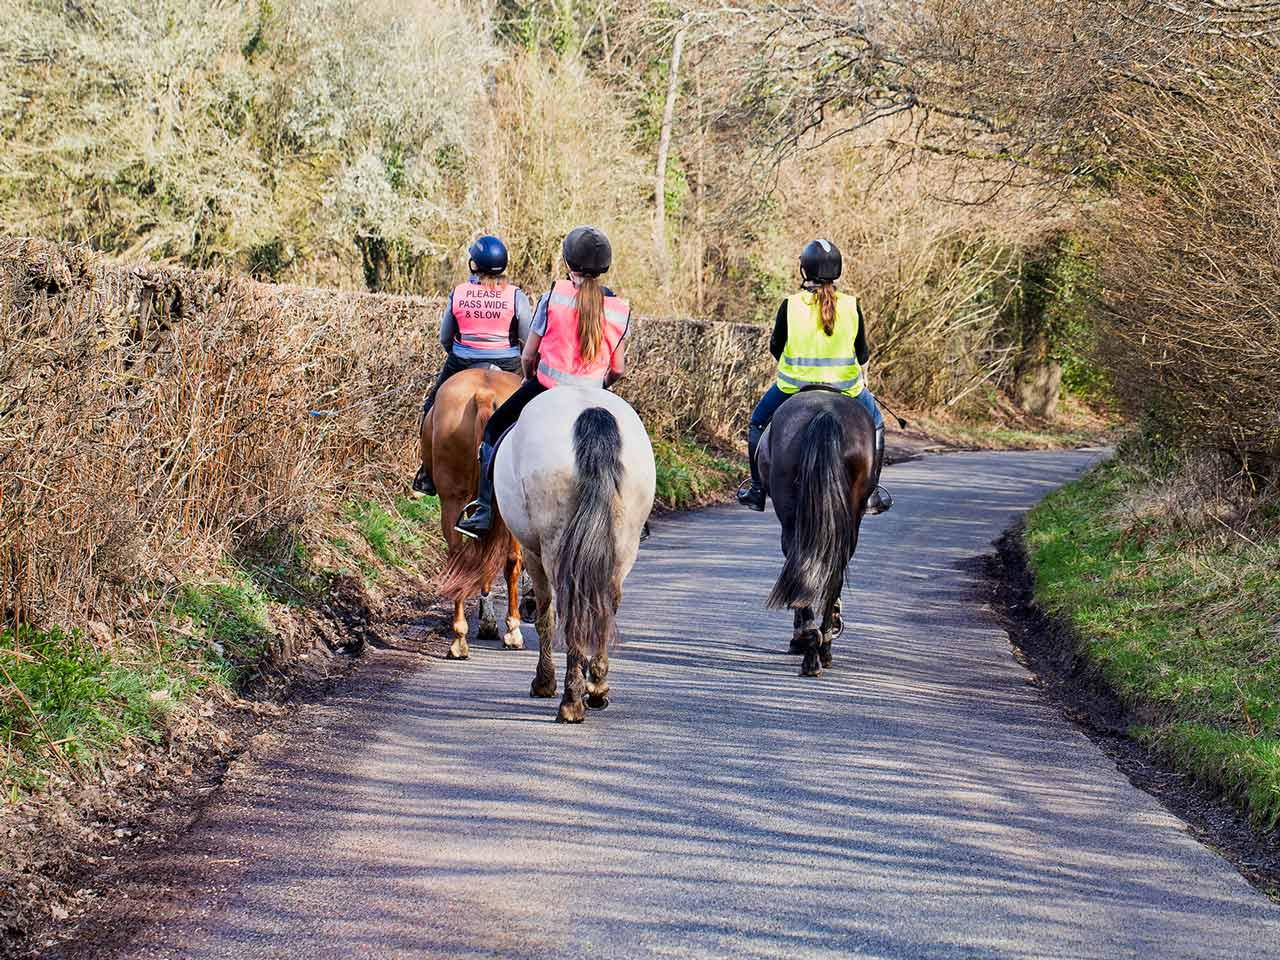 Horse riders on the road